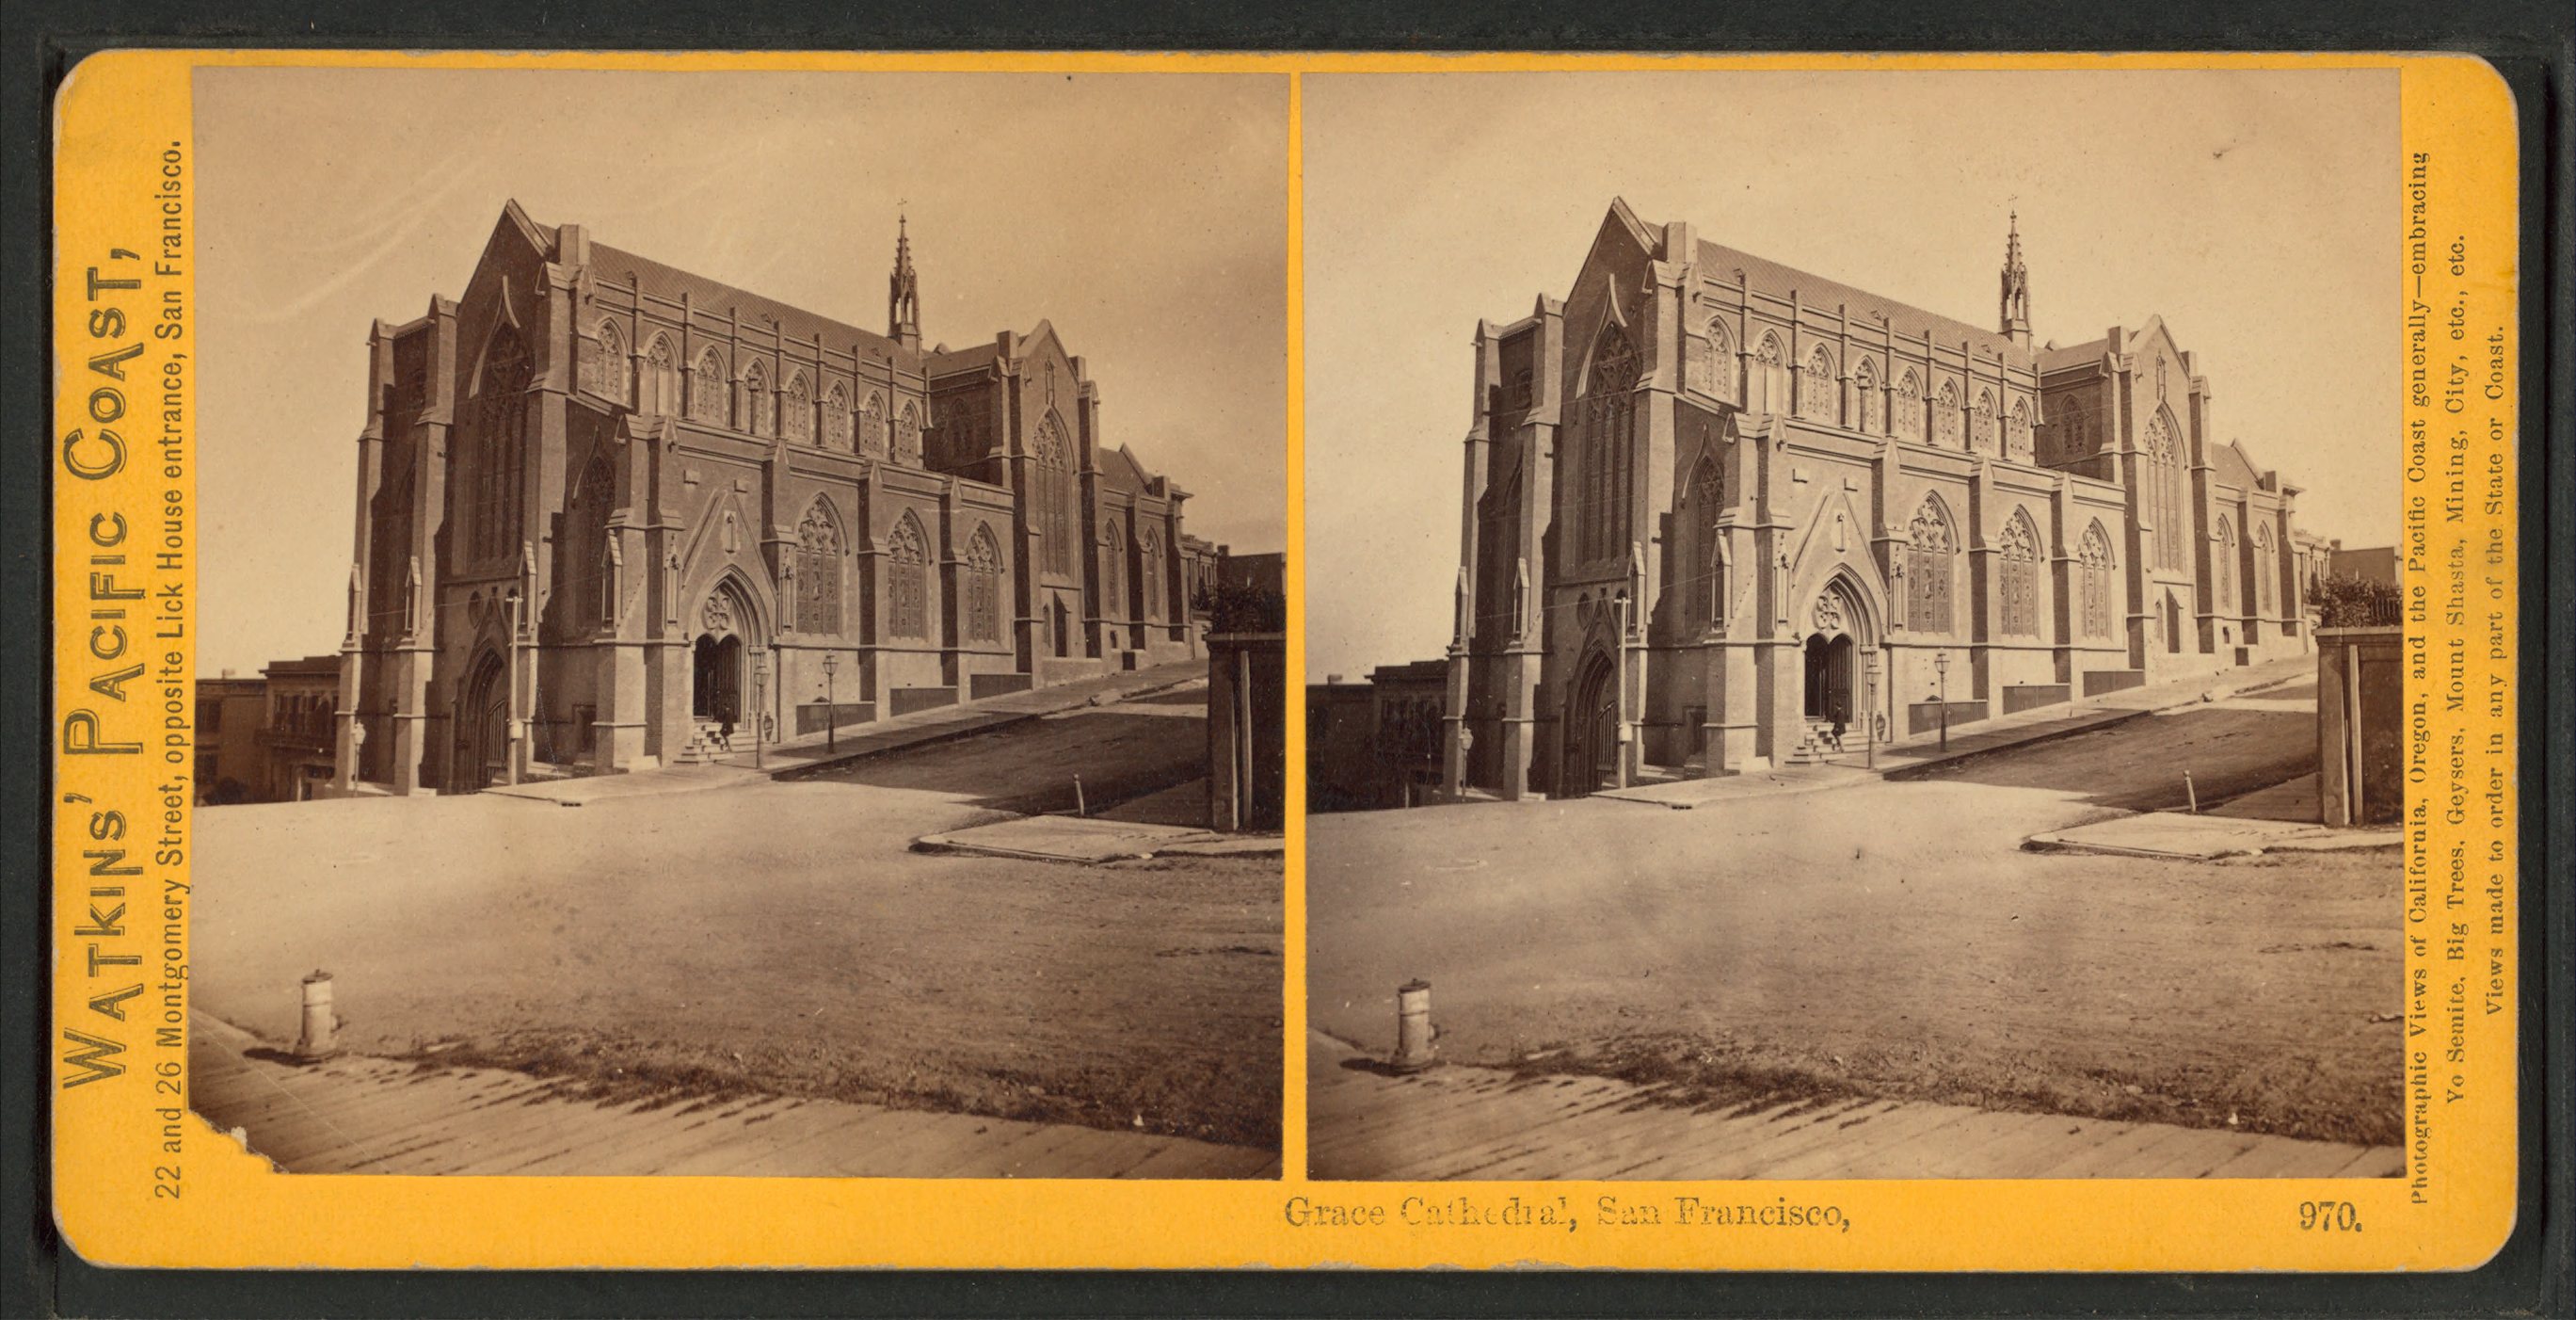 Grace_Cathedral,San_Francisco,_from_Robert_N._Dennis_collection_of_stereoscopic_views